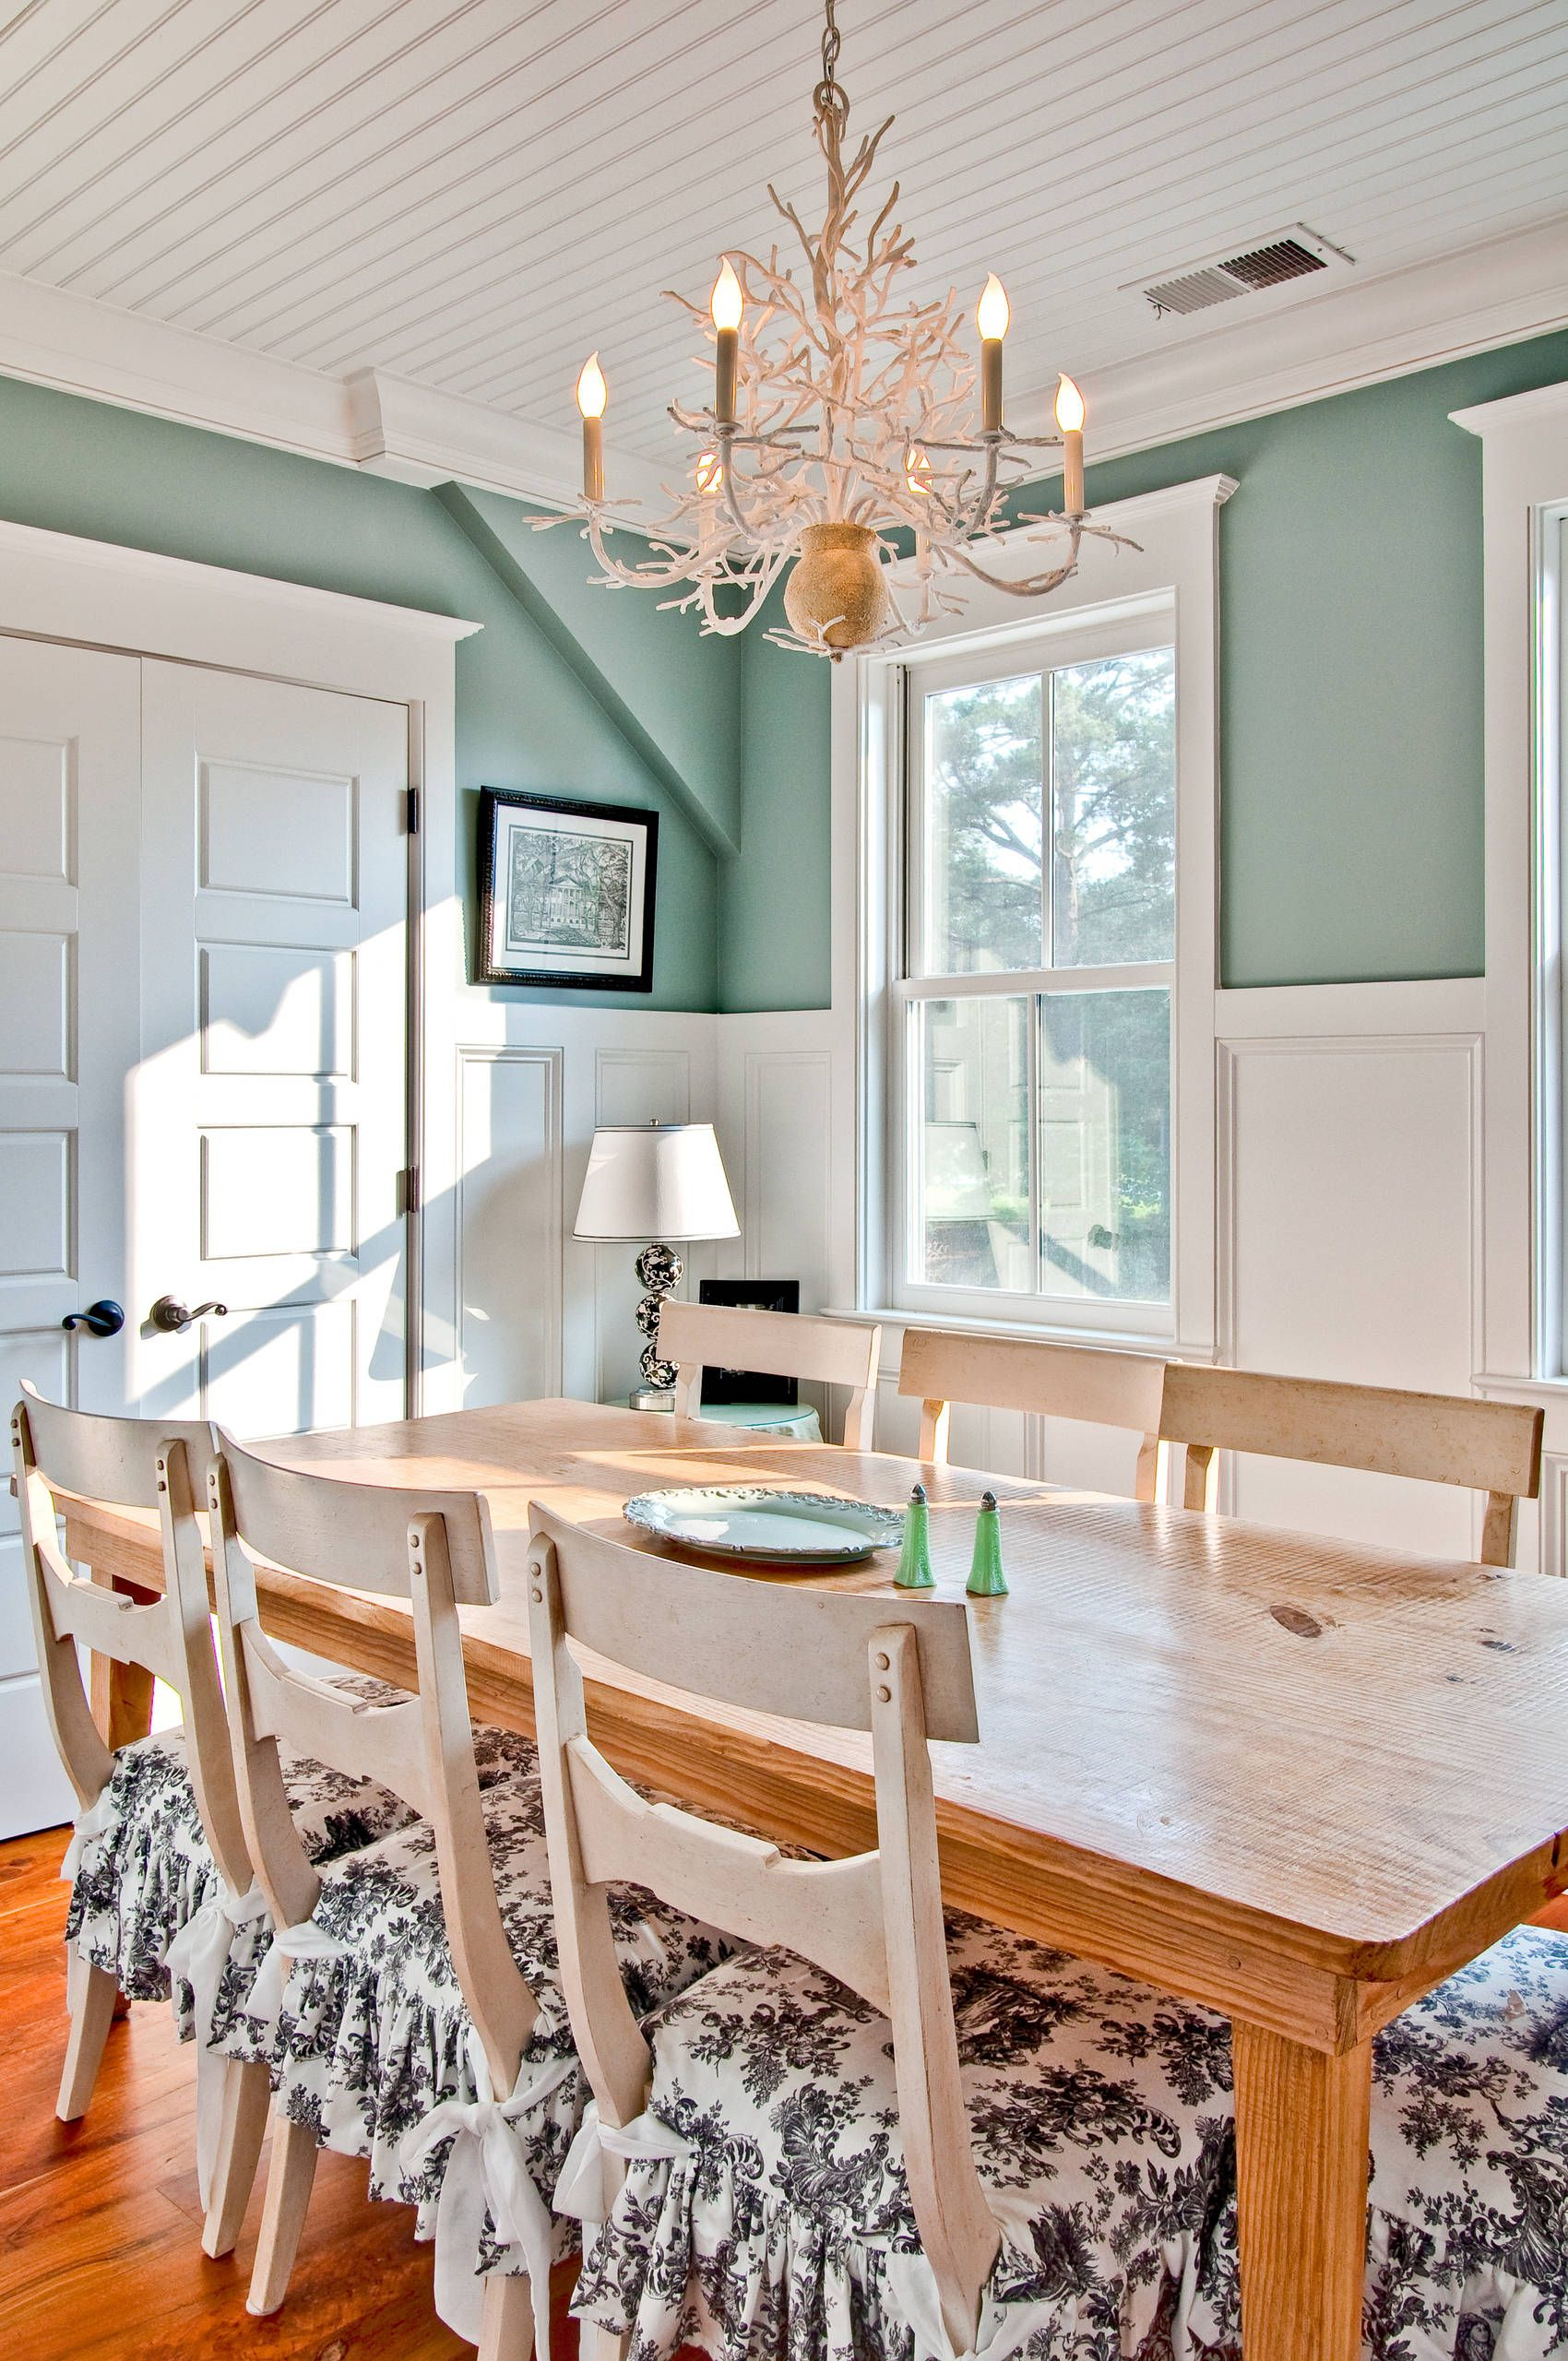 Best of mint green walls dining room light of dining room - Pale green dining room ...